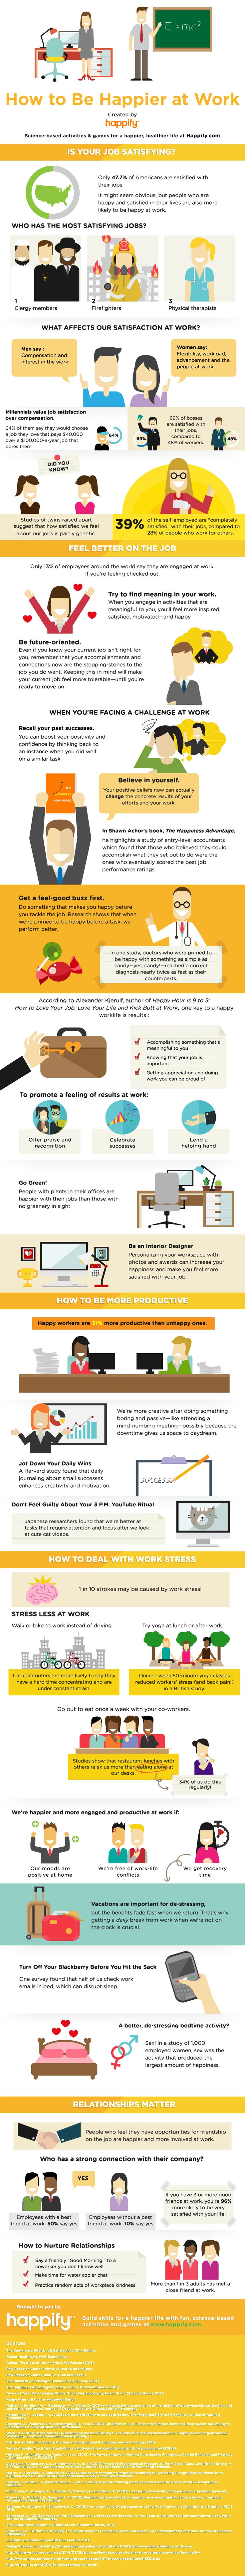 How to be happy at work (Infographic)